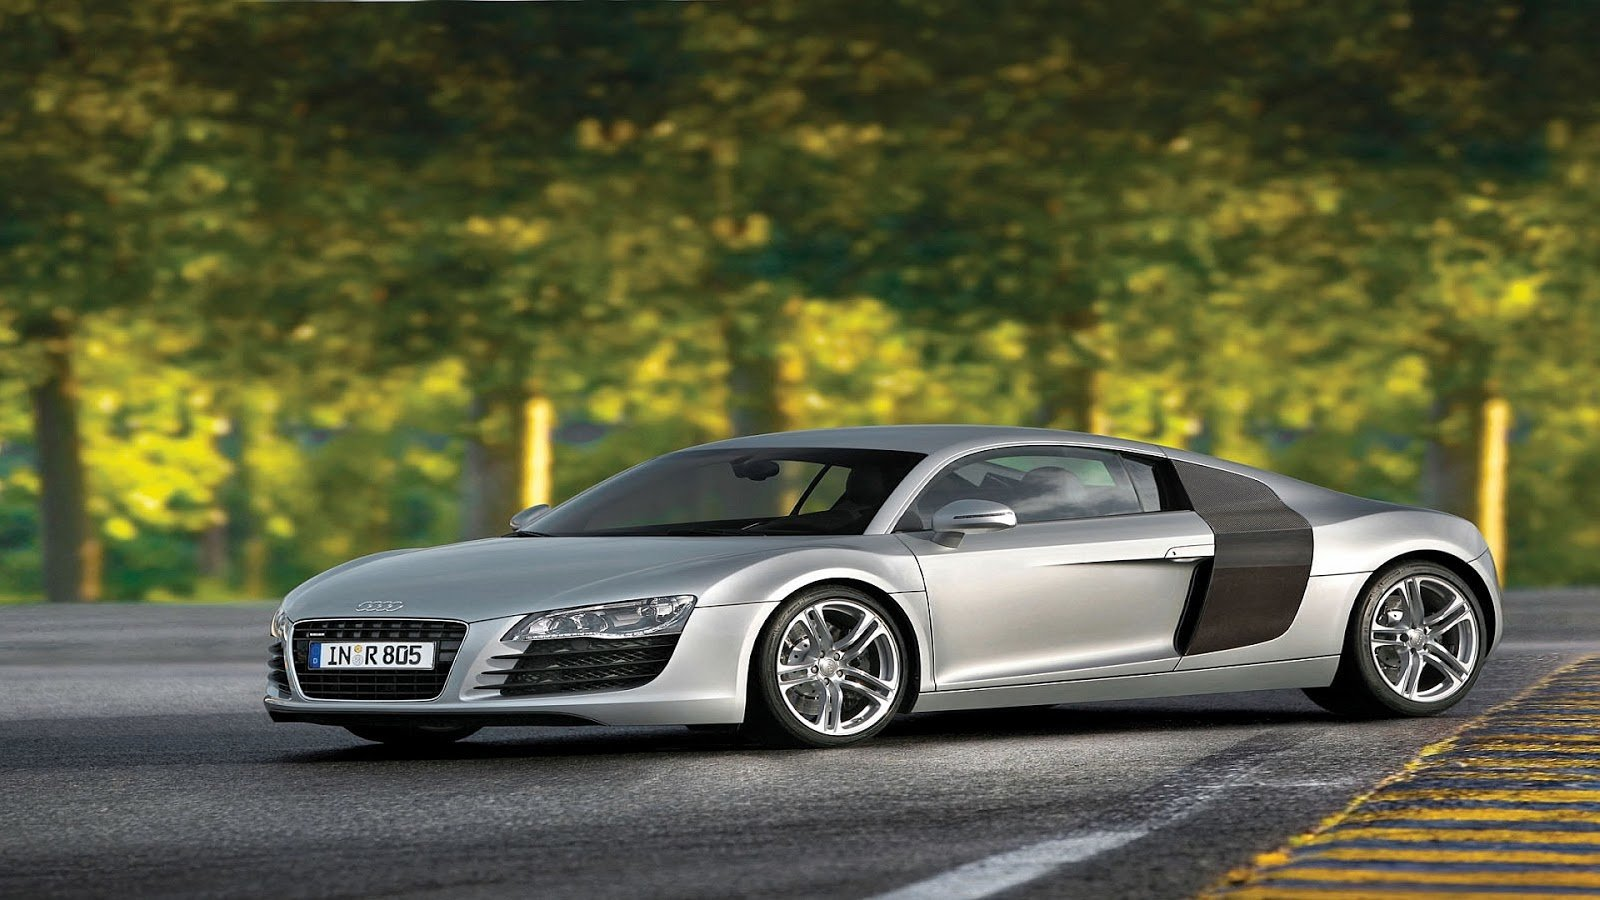 Latest Top 27 Most Beautiful And Dashing Audi Car Wallpapers In Hd Free Download